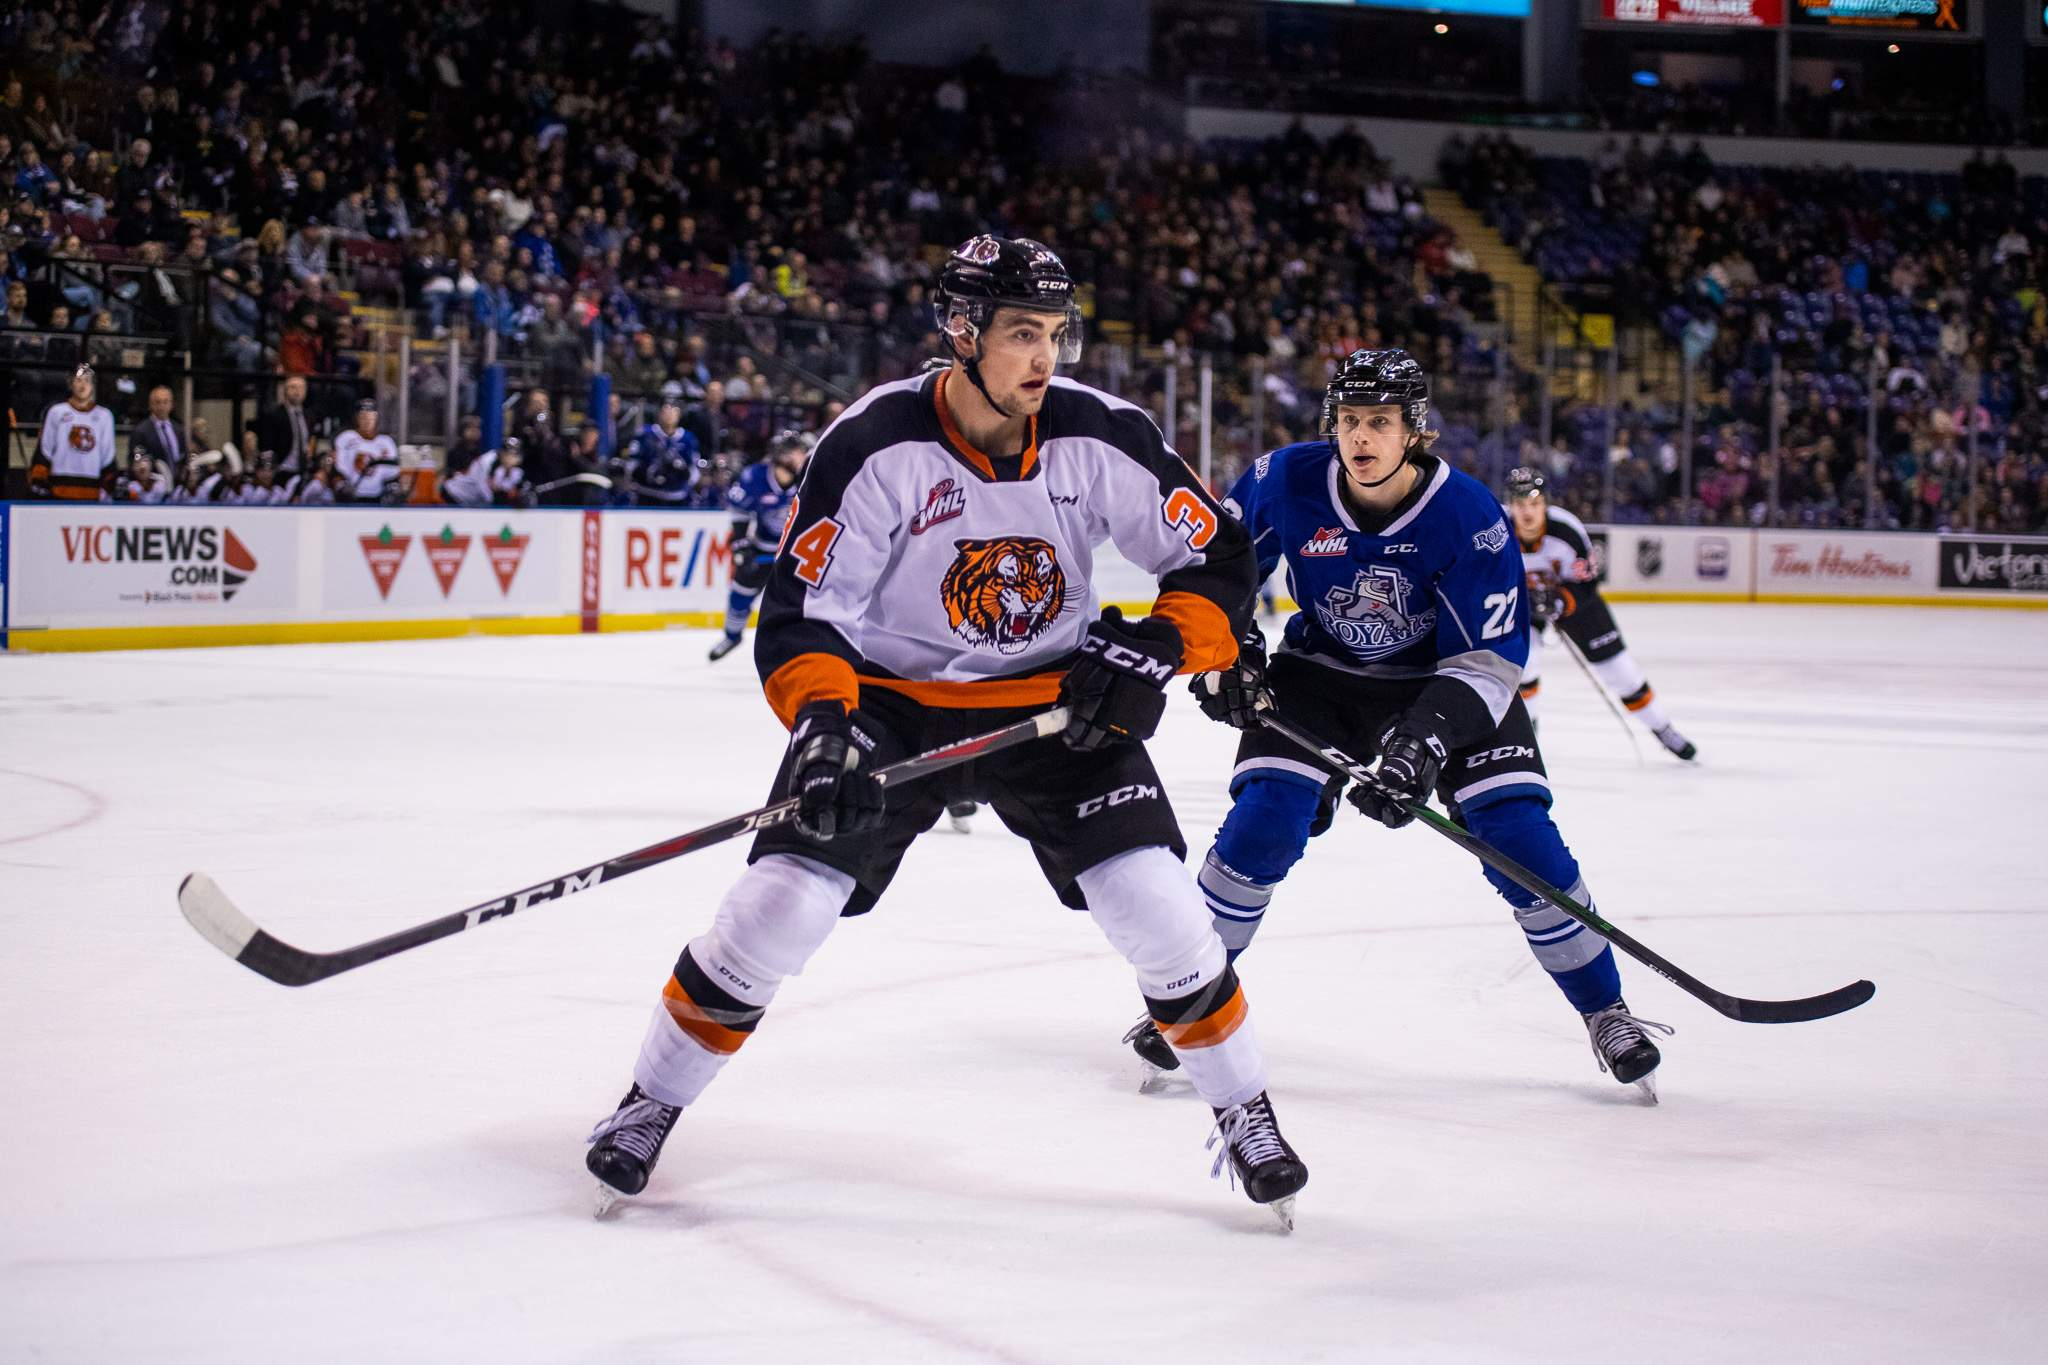 Victoria Royals vs Medicine Hat Tigers. Photo by Nathanael Laranjeiras